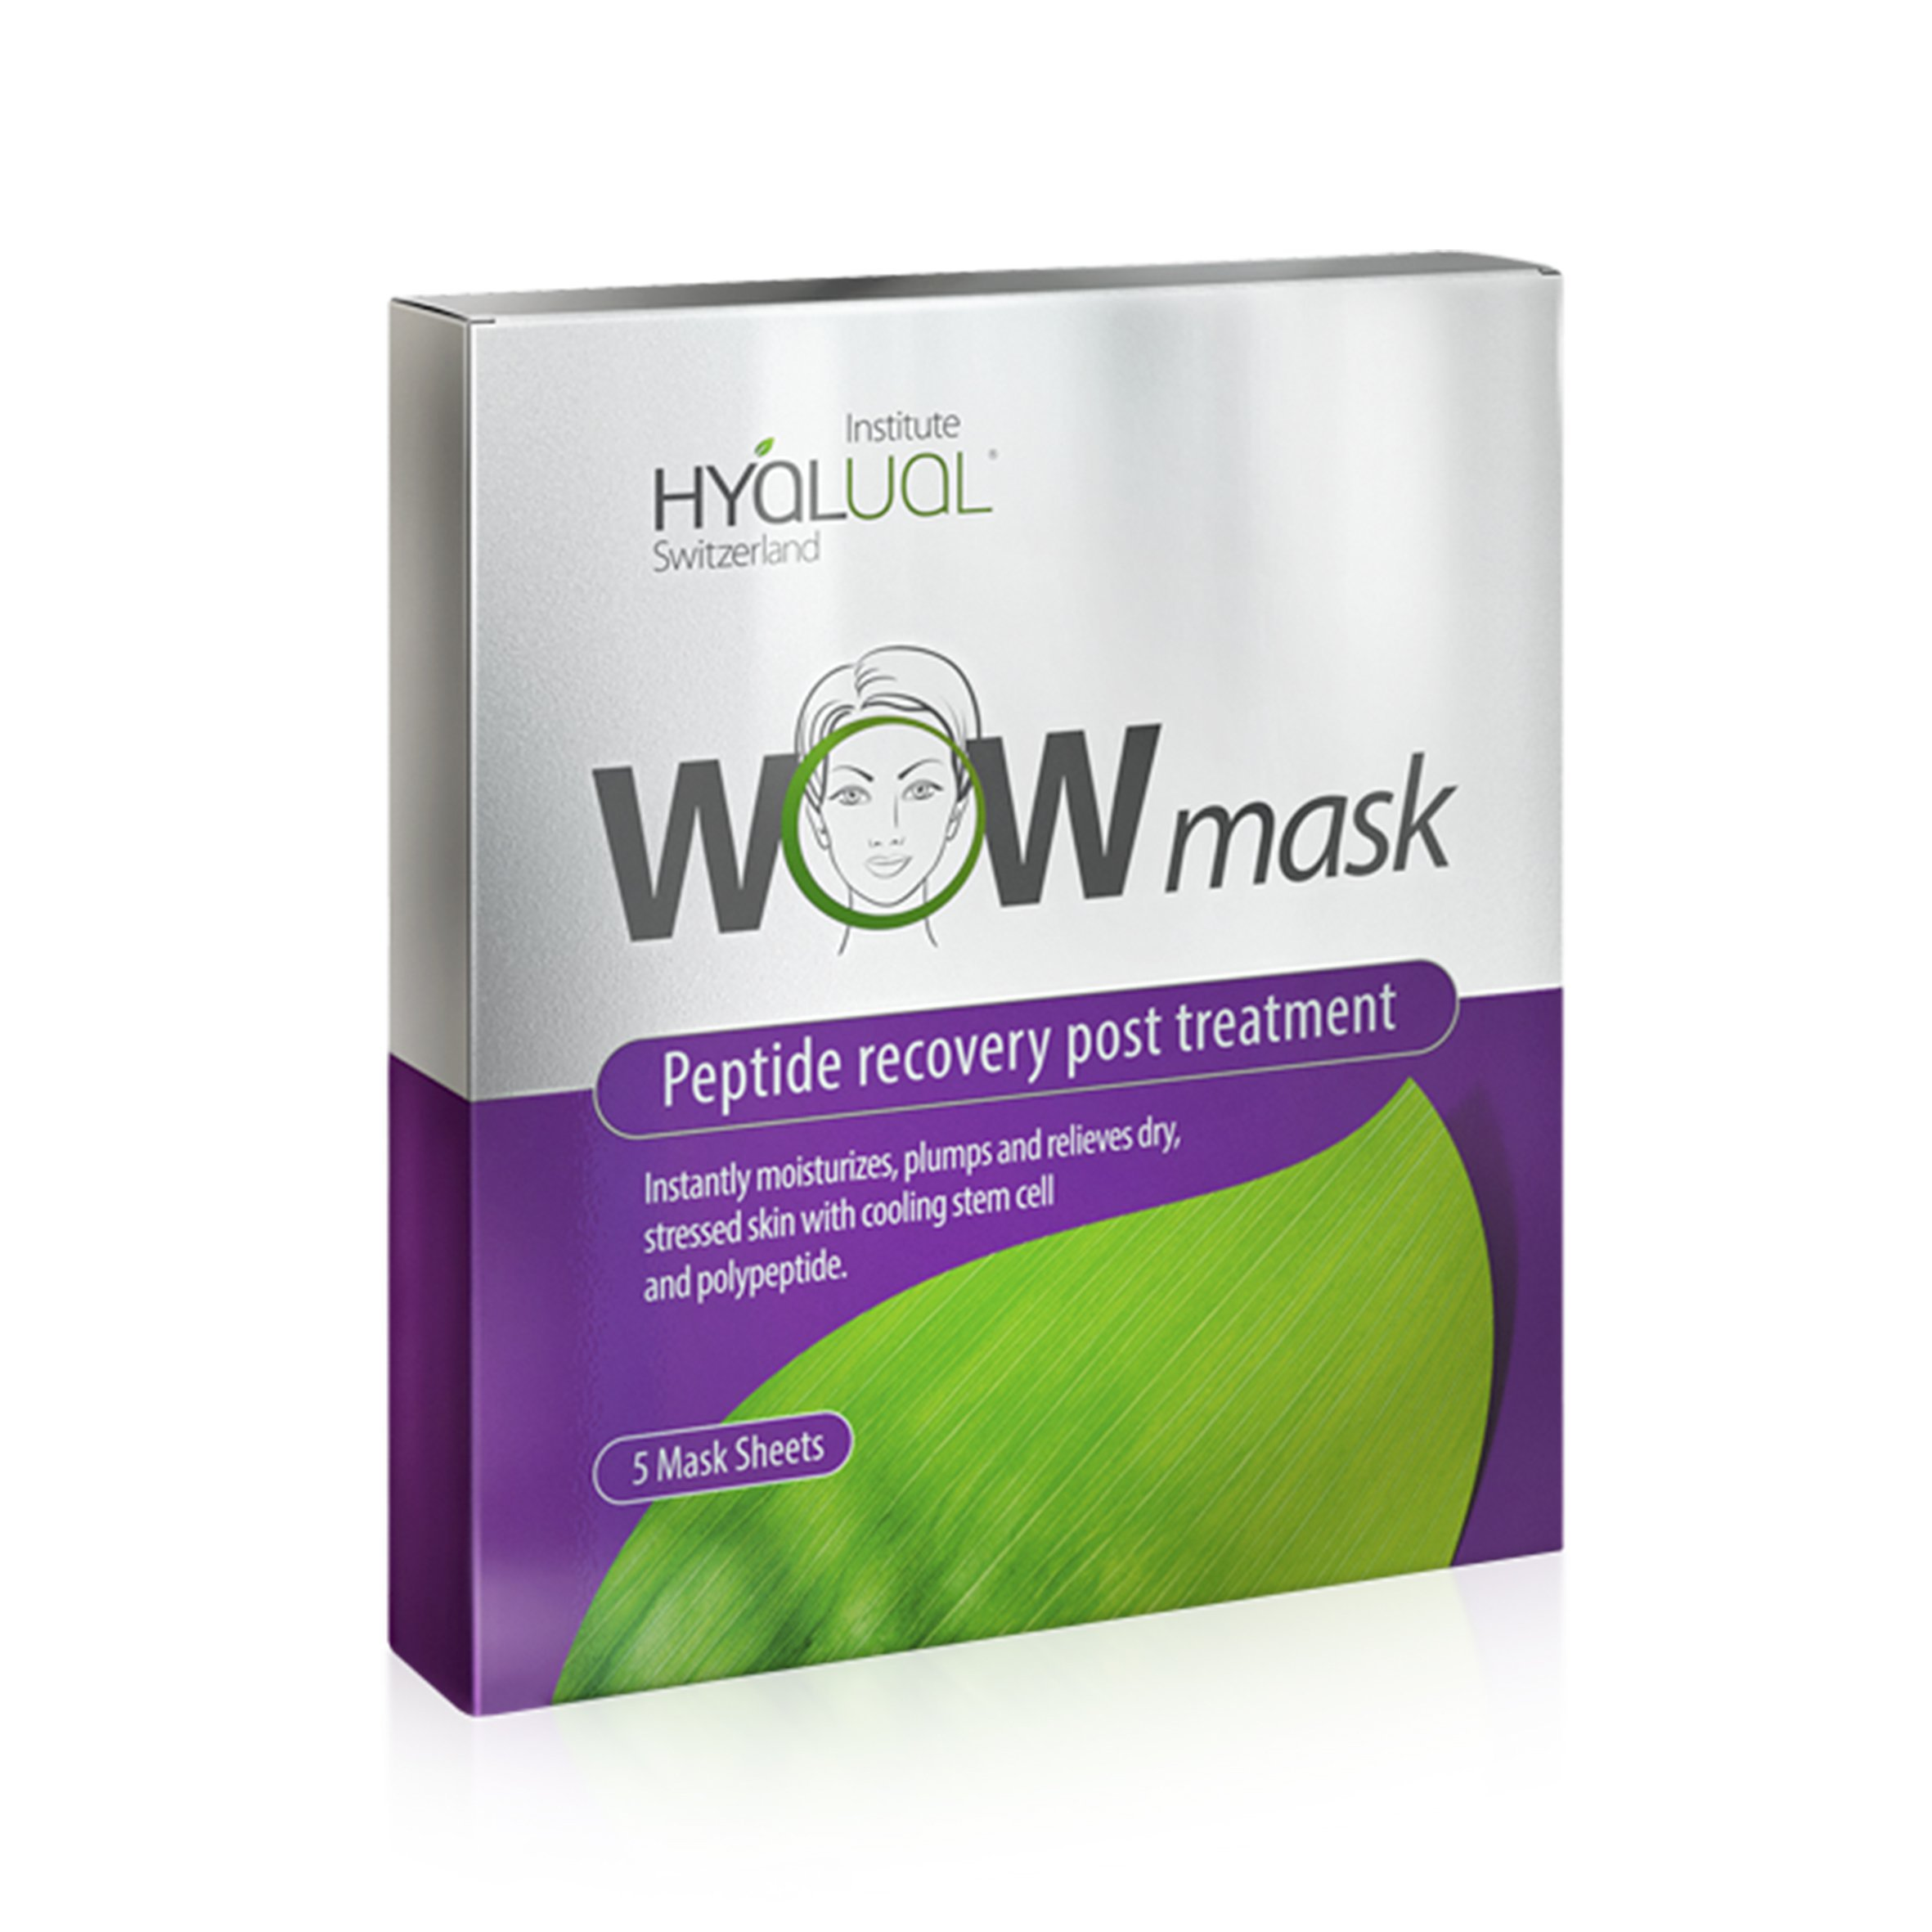 Маска Hyalual WOW mask (5 шт.)